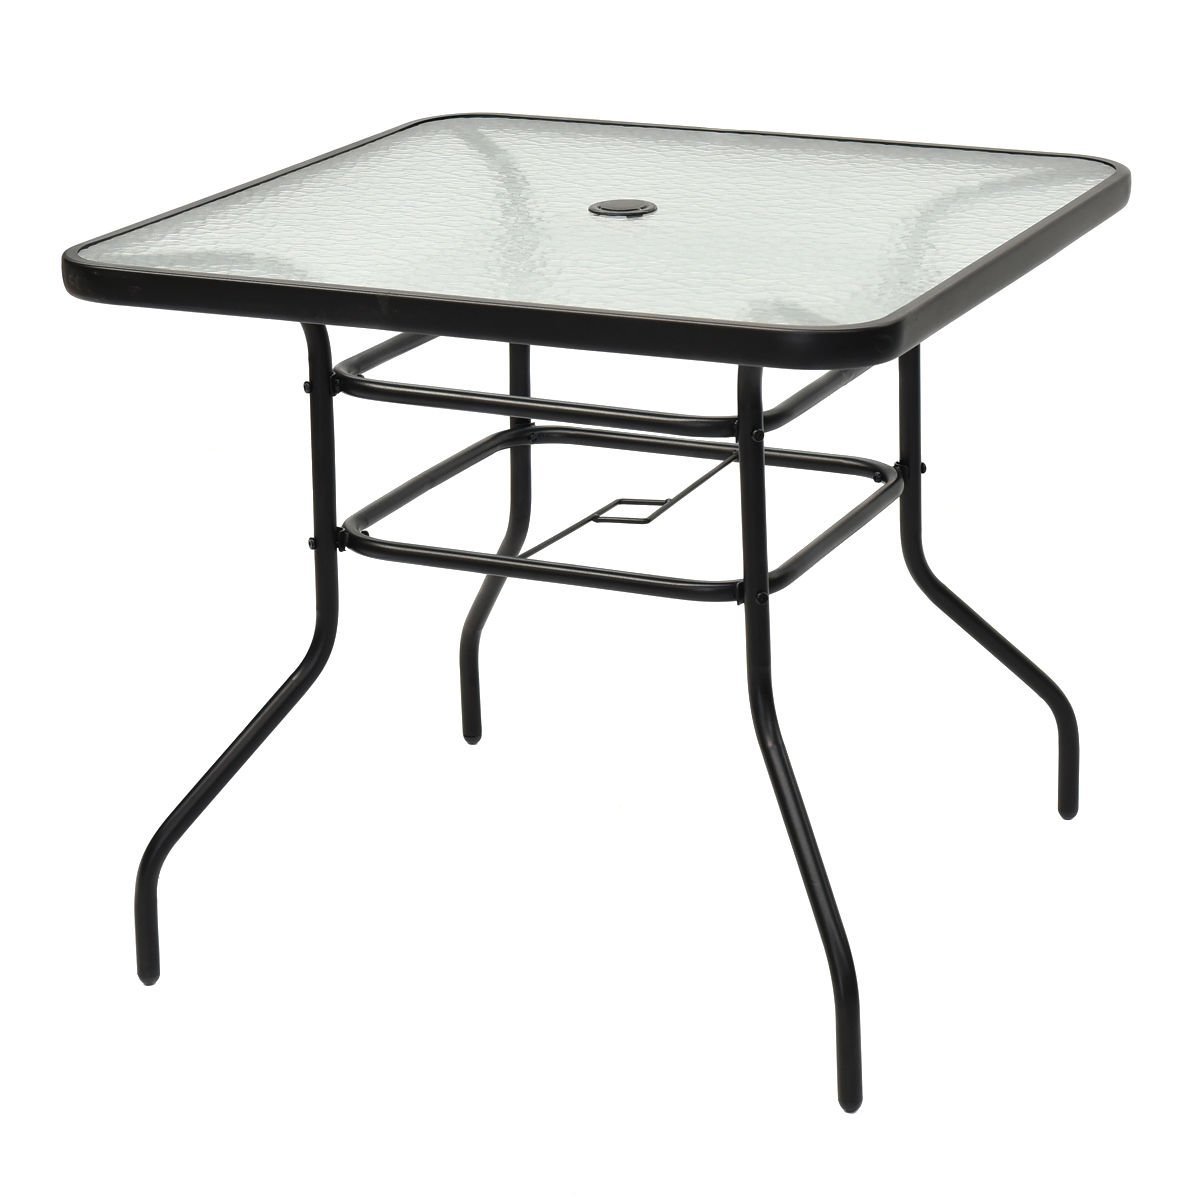 Tangkula 31 1/2'' Square Tempered Glass Metal Table Outdoor Garden Pool Table